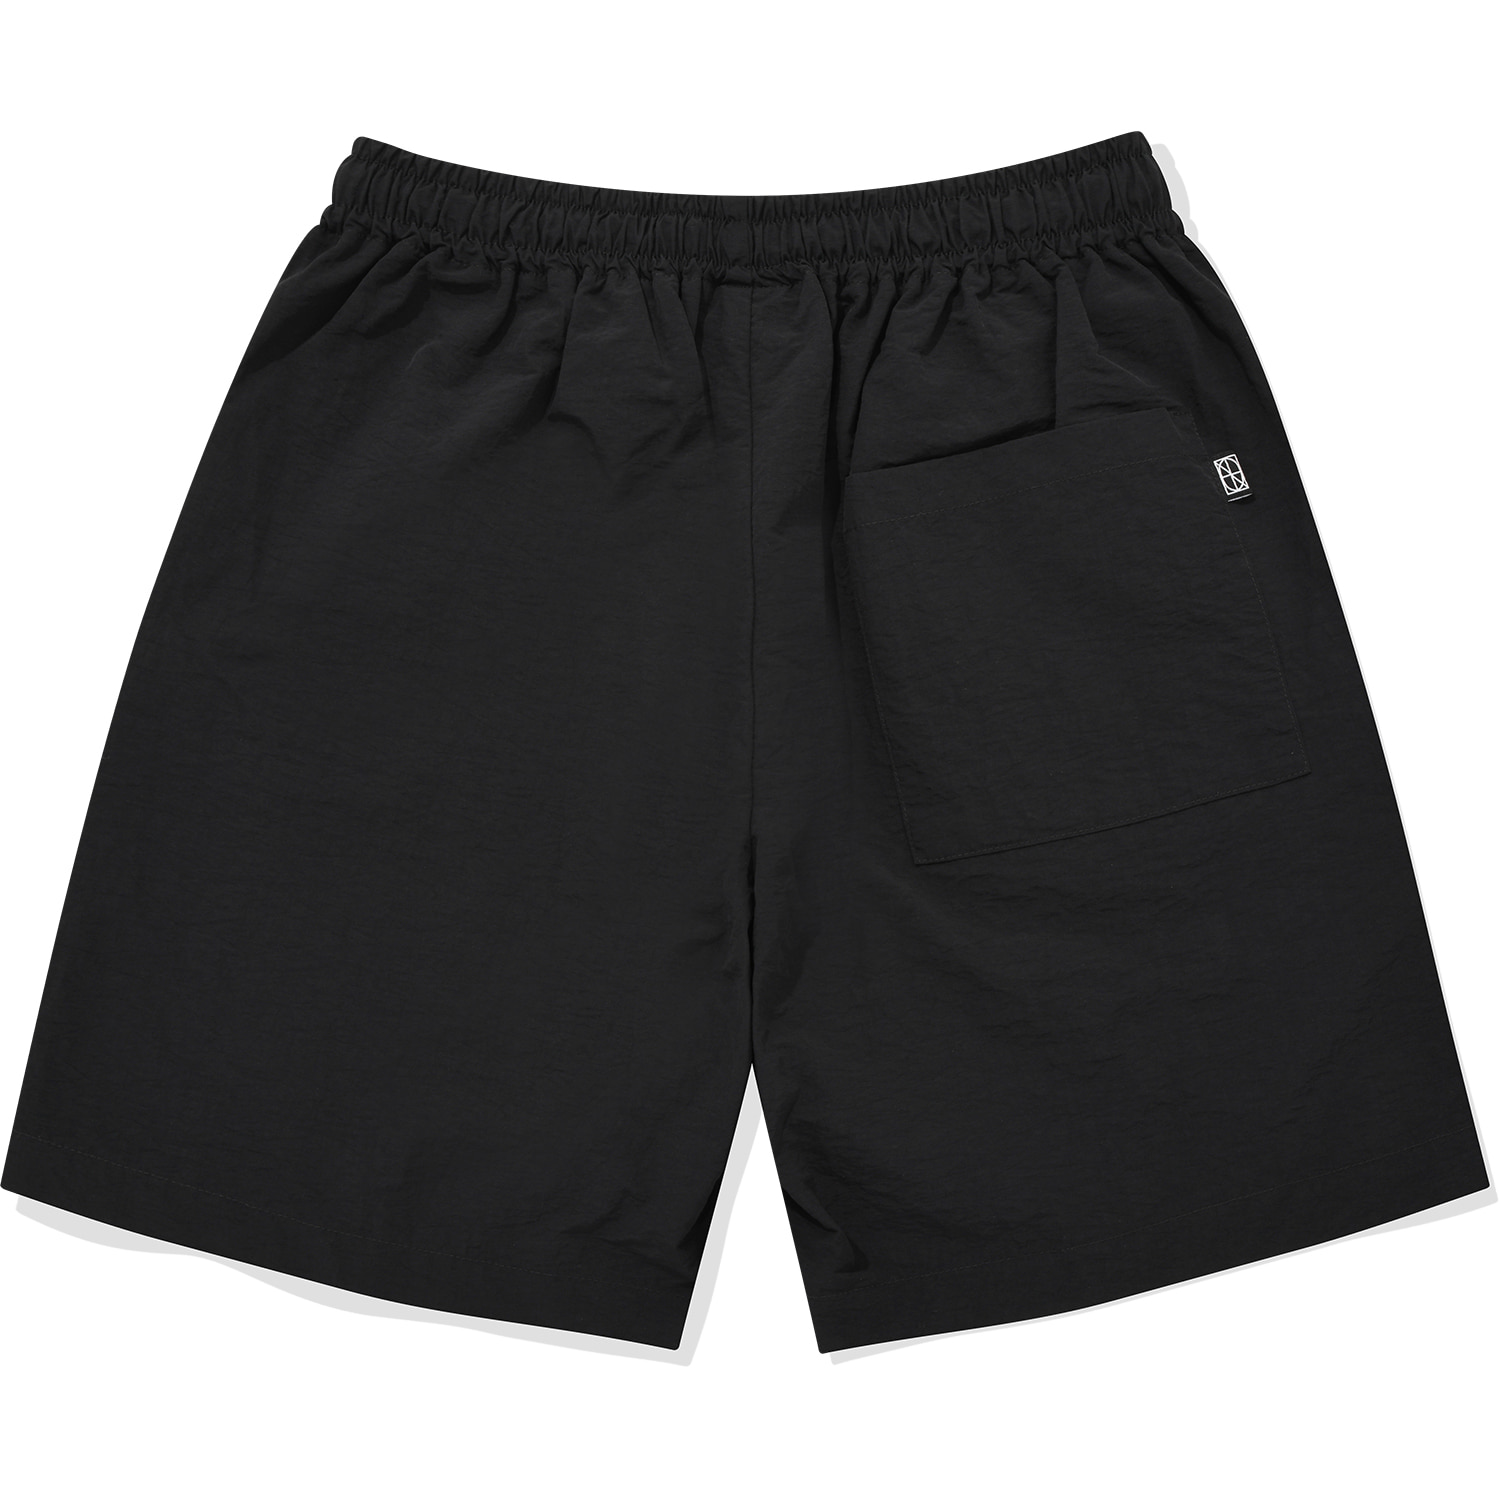 Nylon Zipper Short Black,NOT4NERD